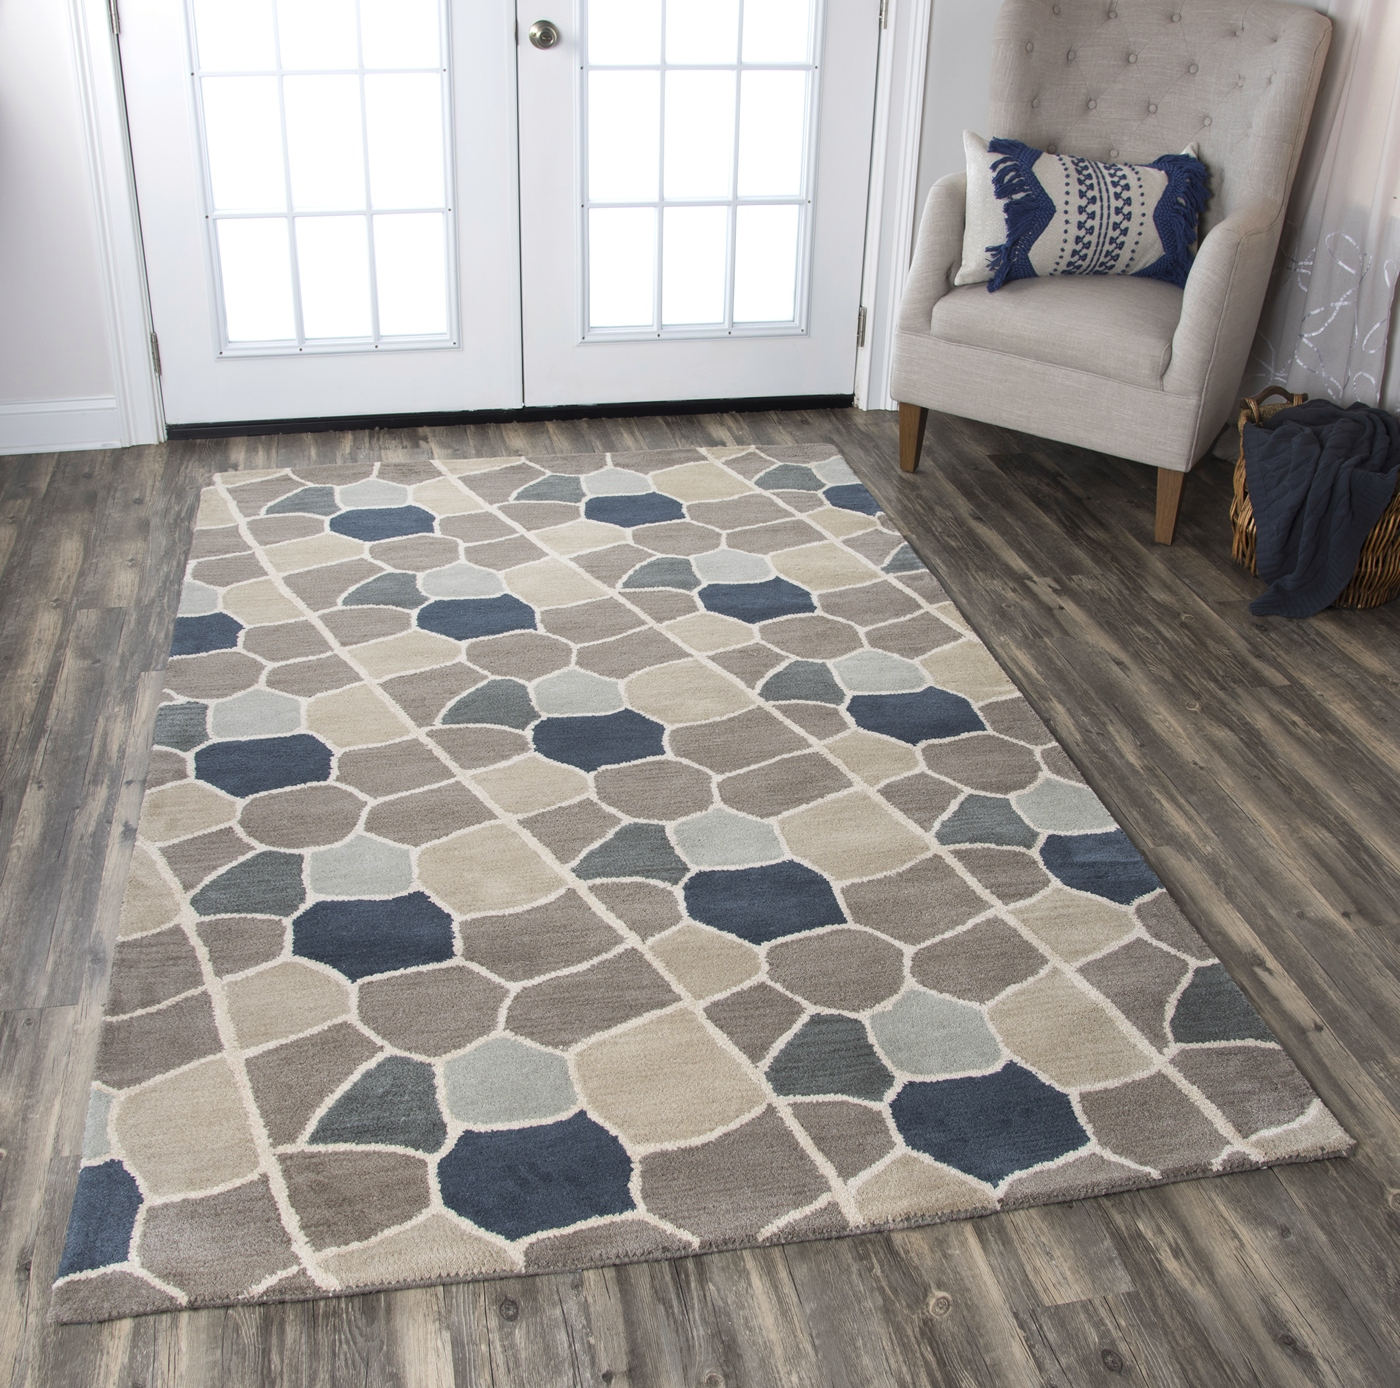 Valintino Striped Mosaic Wool Area Rug In Gray Blue Navy